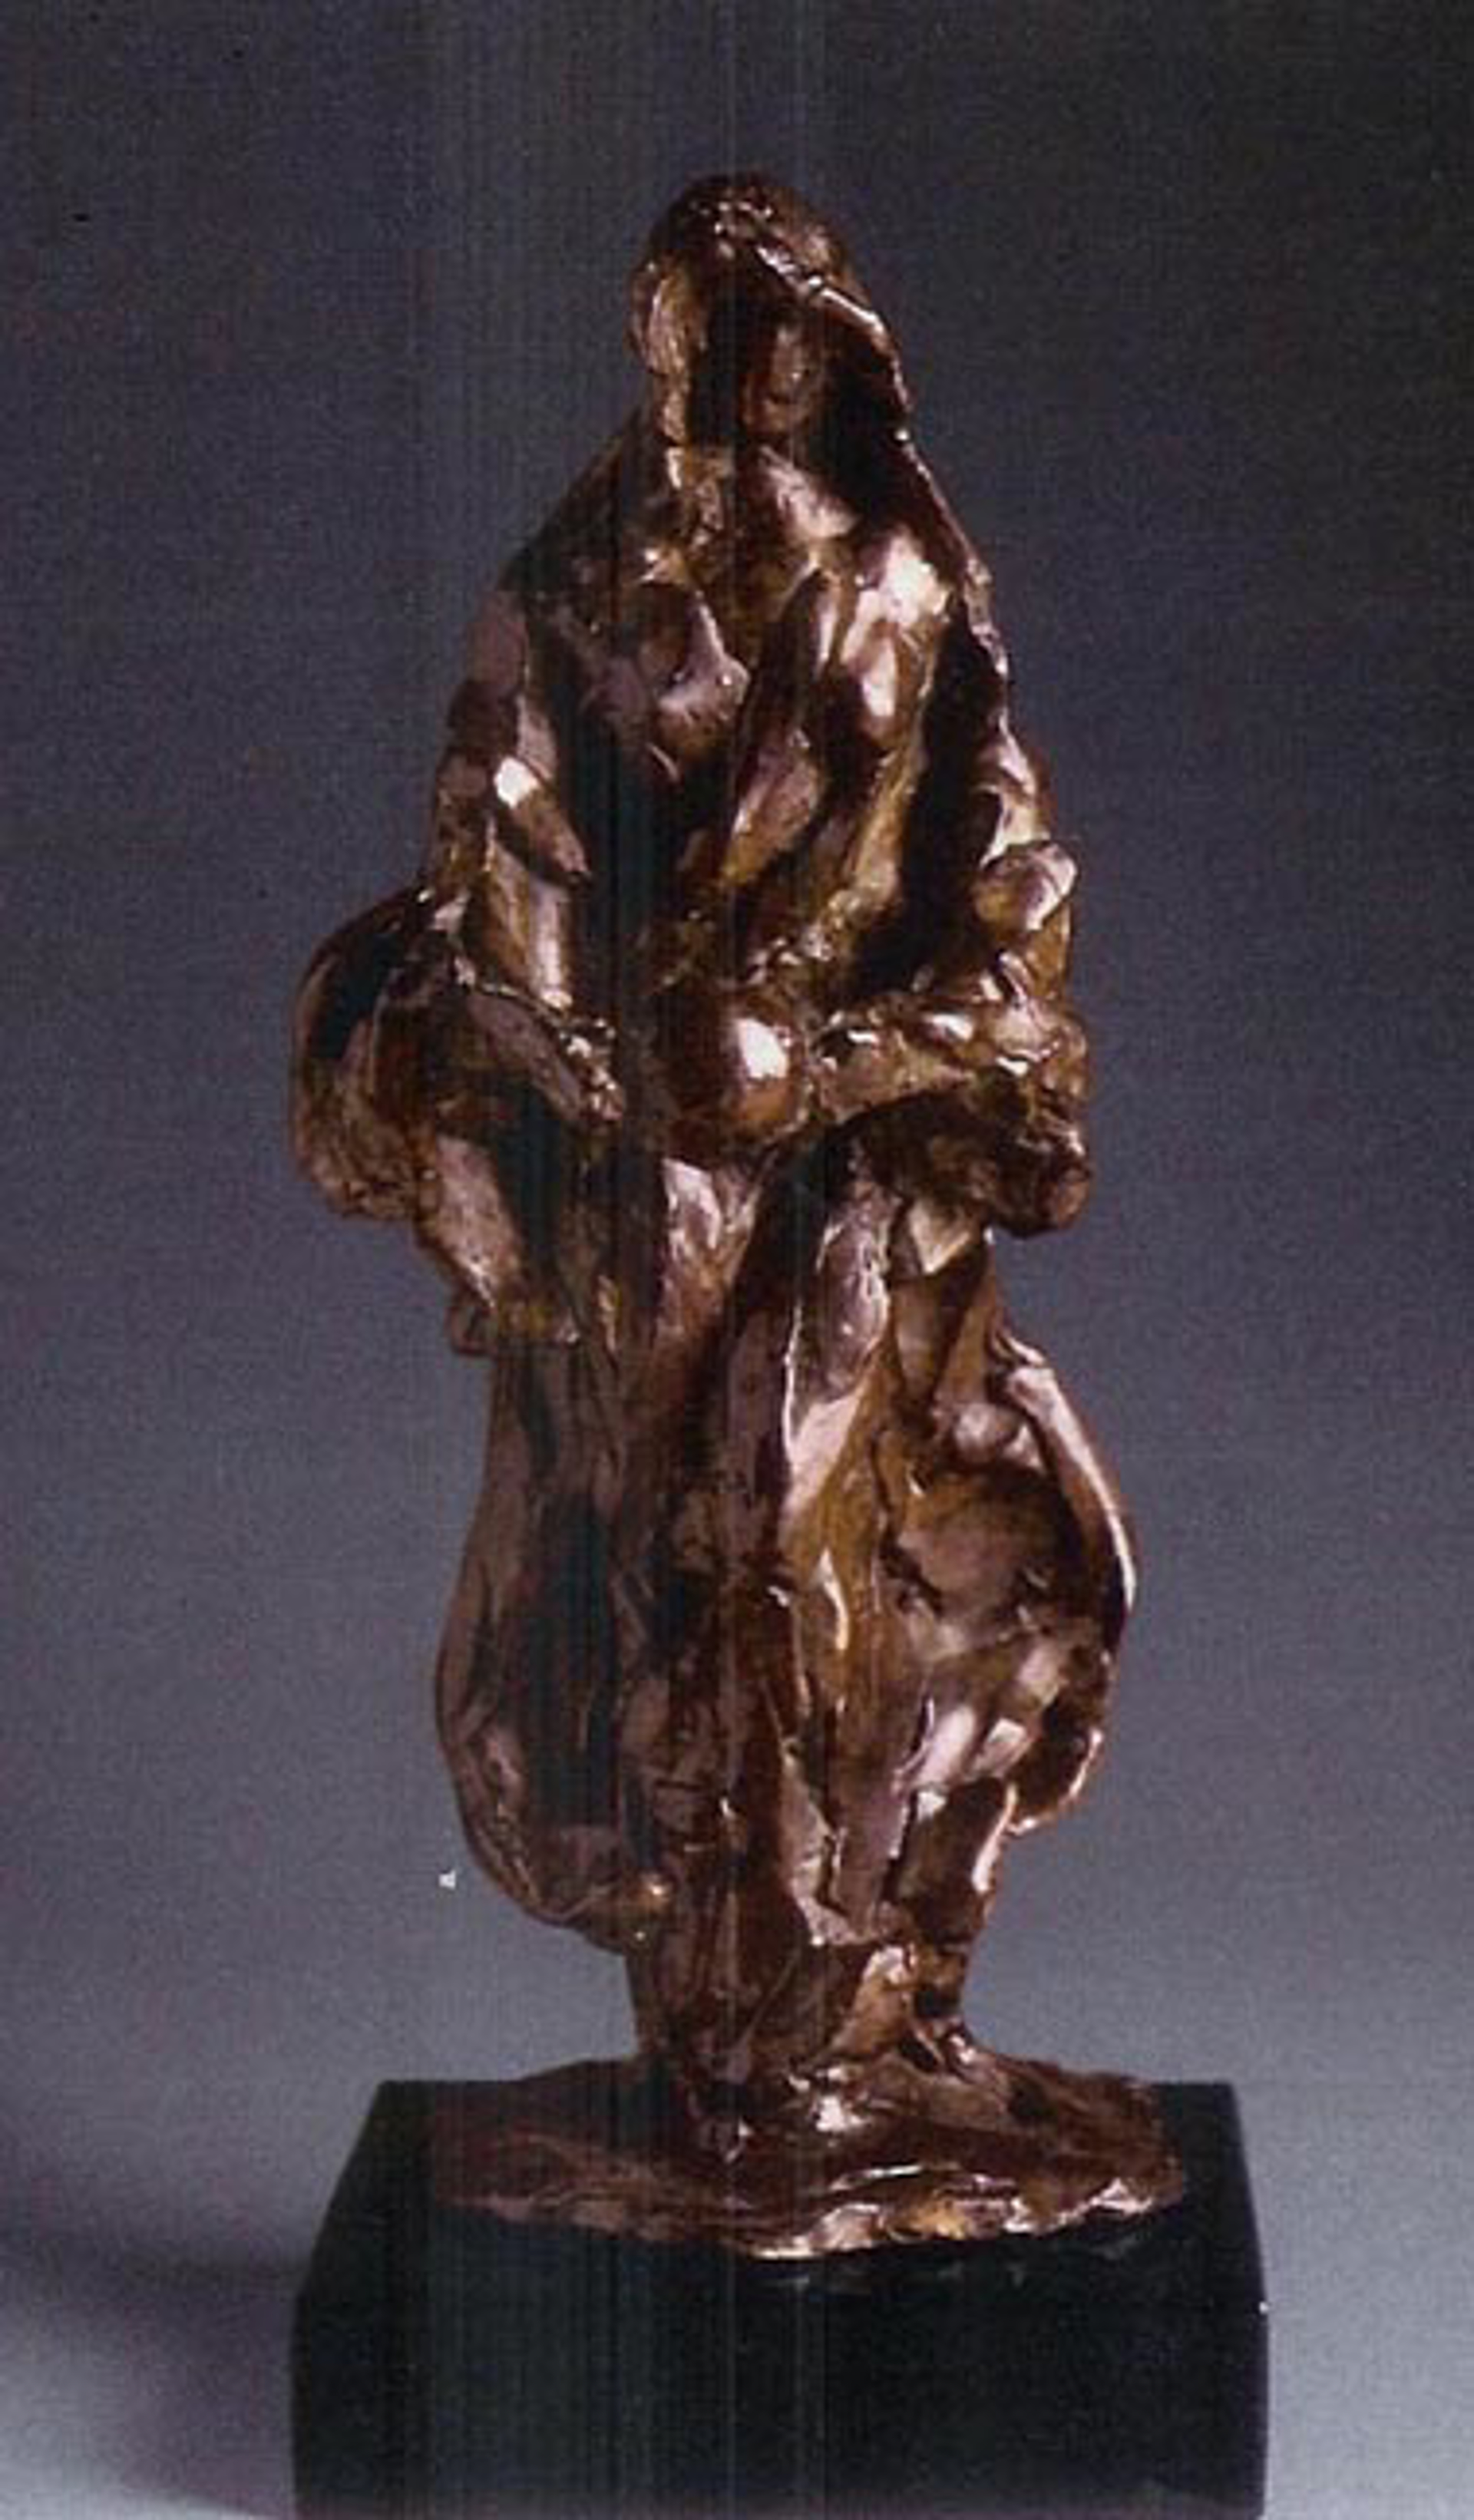 The Source Maquette by Frederick Hart